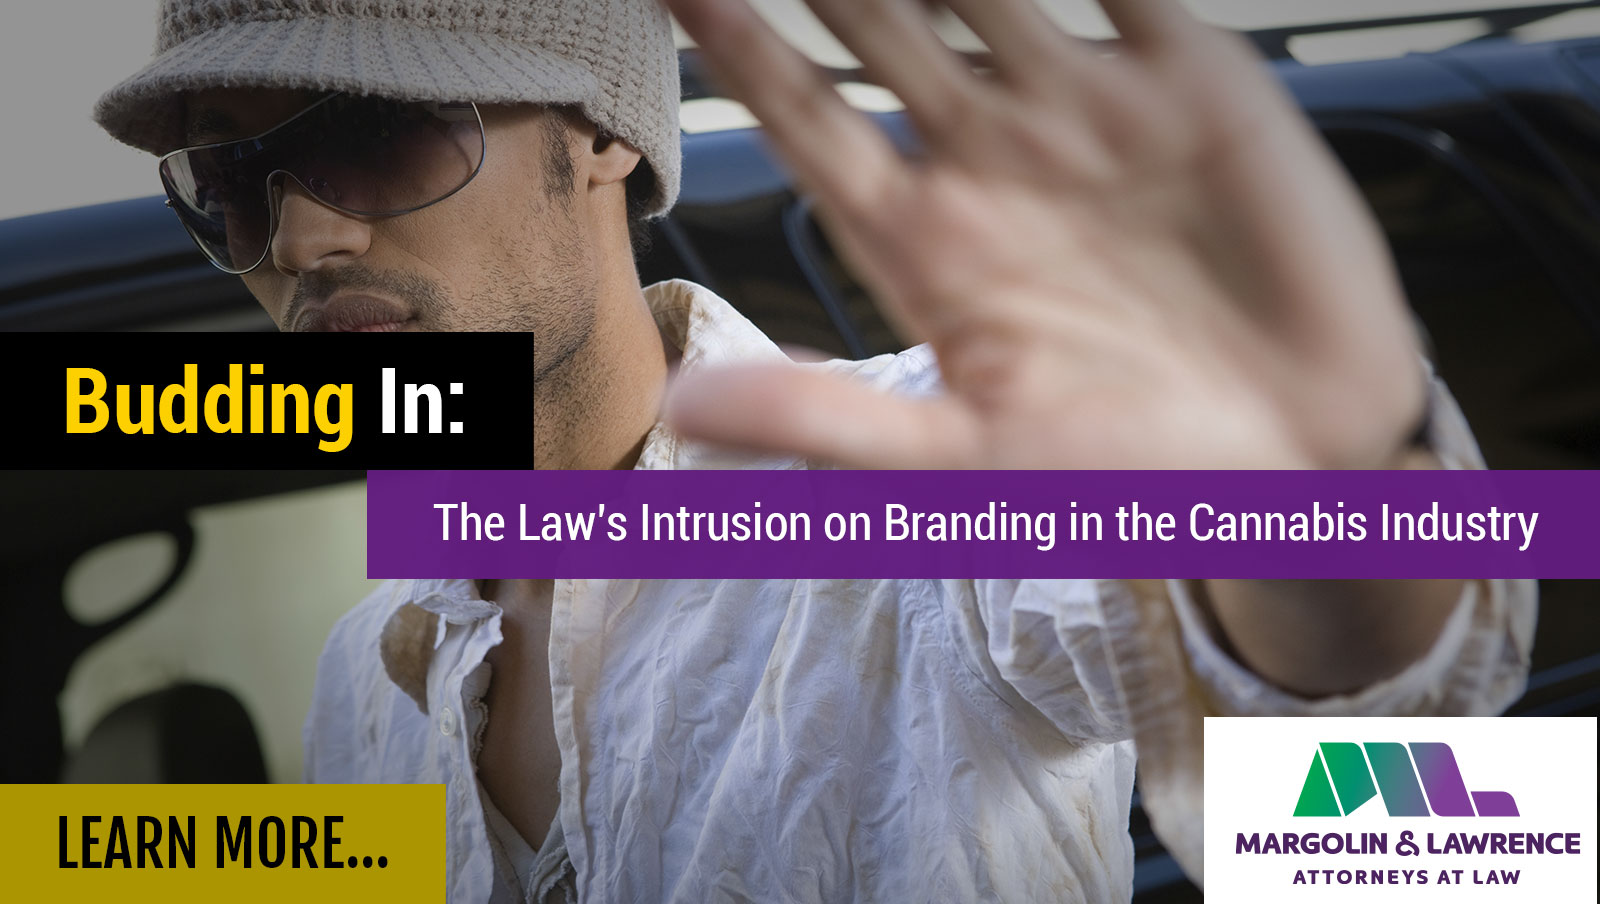 Budding In: Branding in the Cannabis Industry